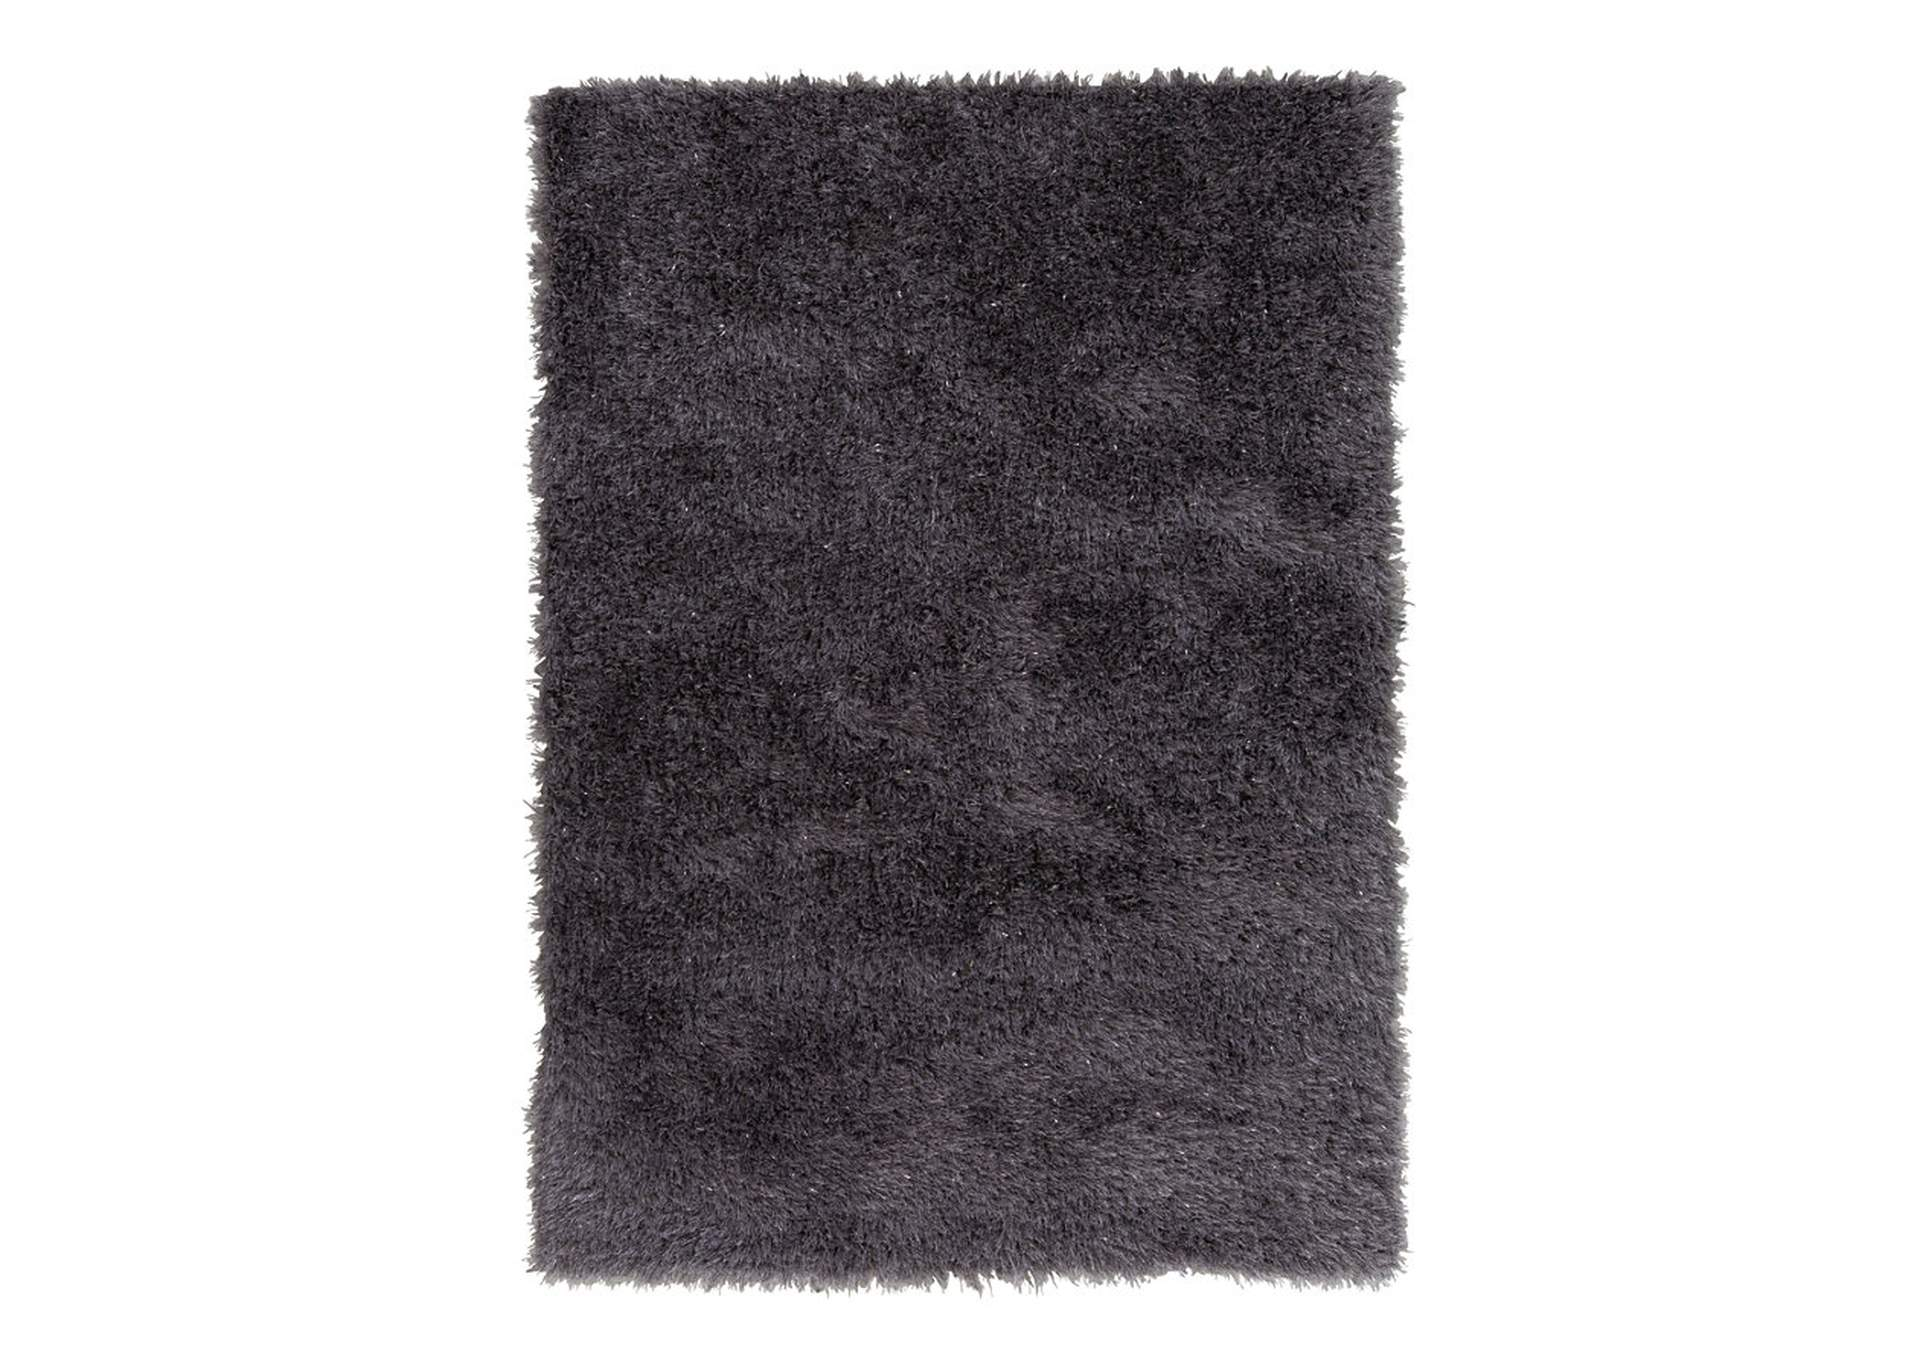 Jaznae Gray Medium Rug,Direct To Consumer Express